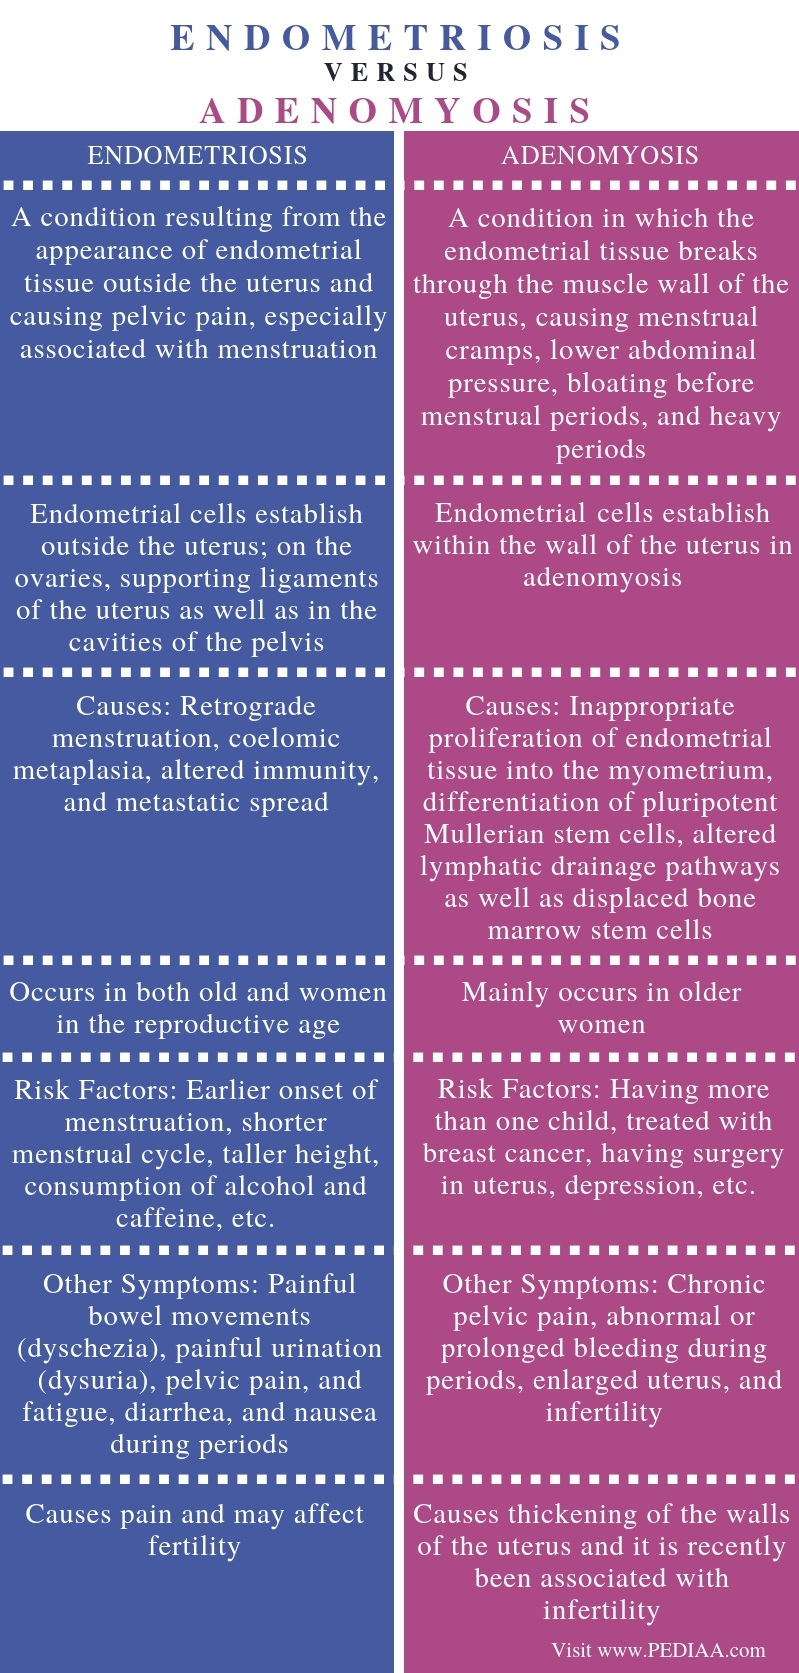 Difference Between Endometriosis and Adenomyosis - Comparison Summary